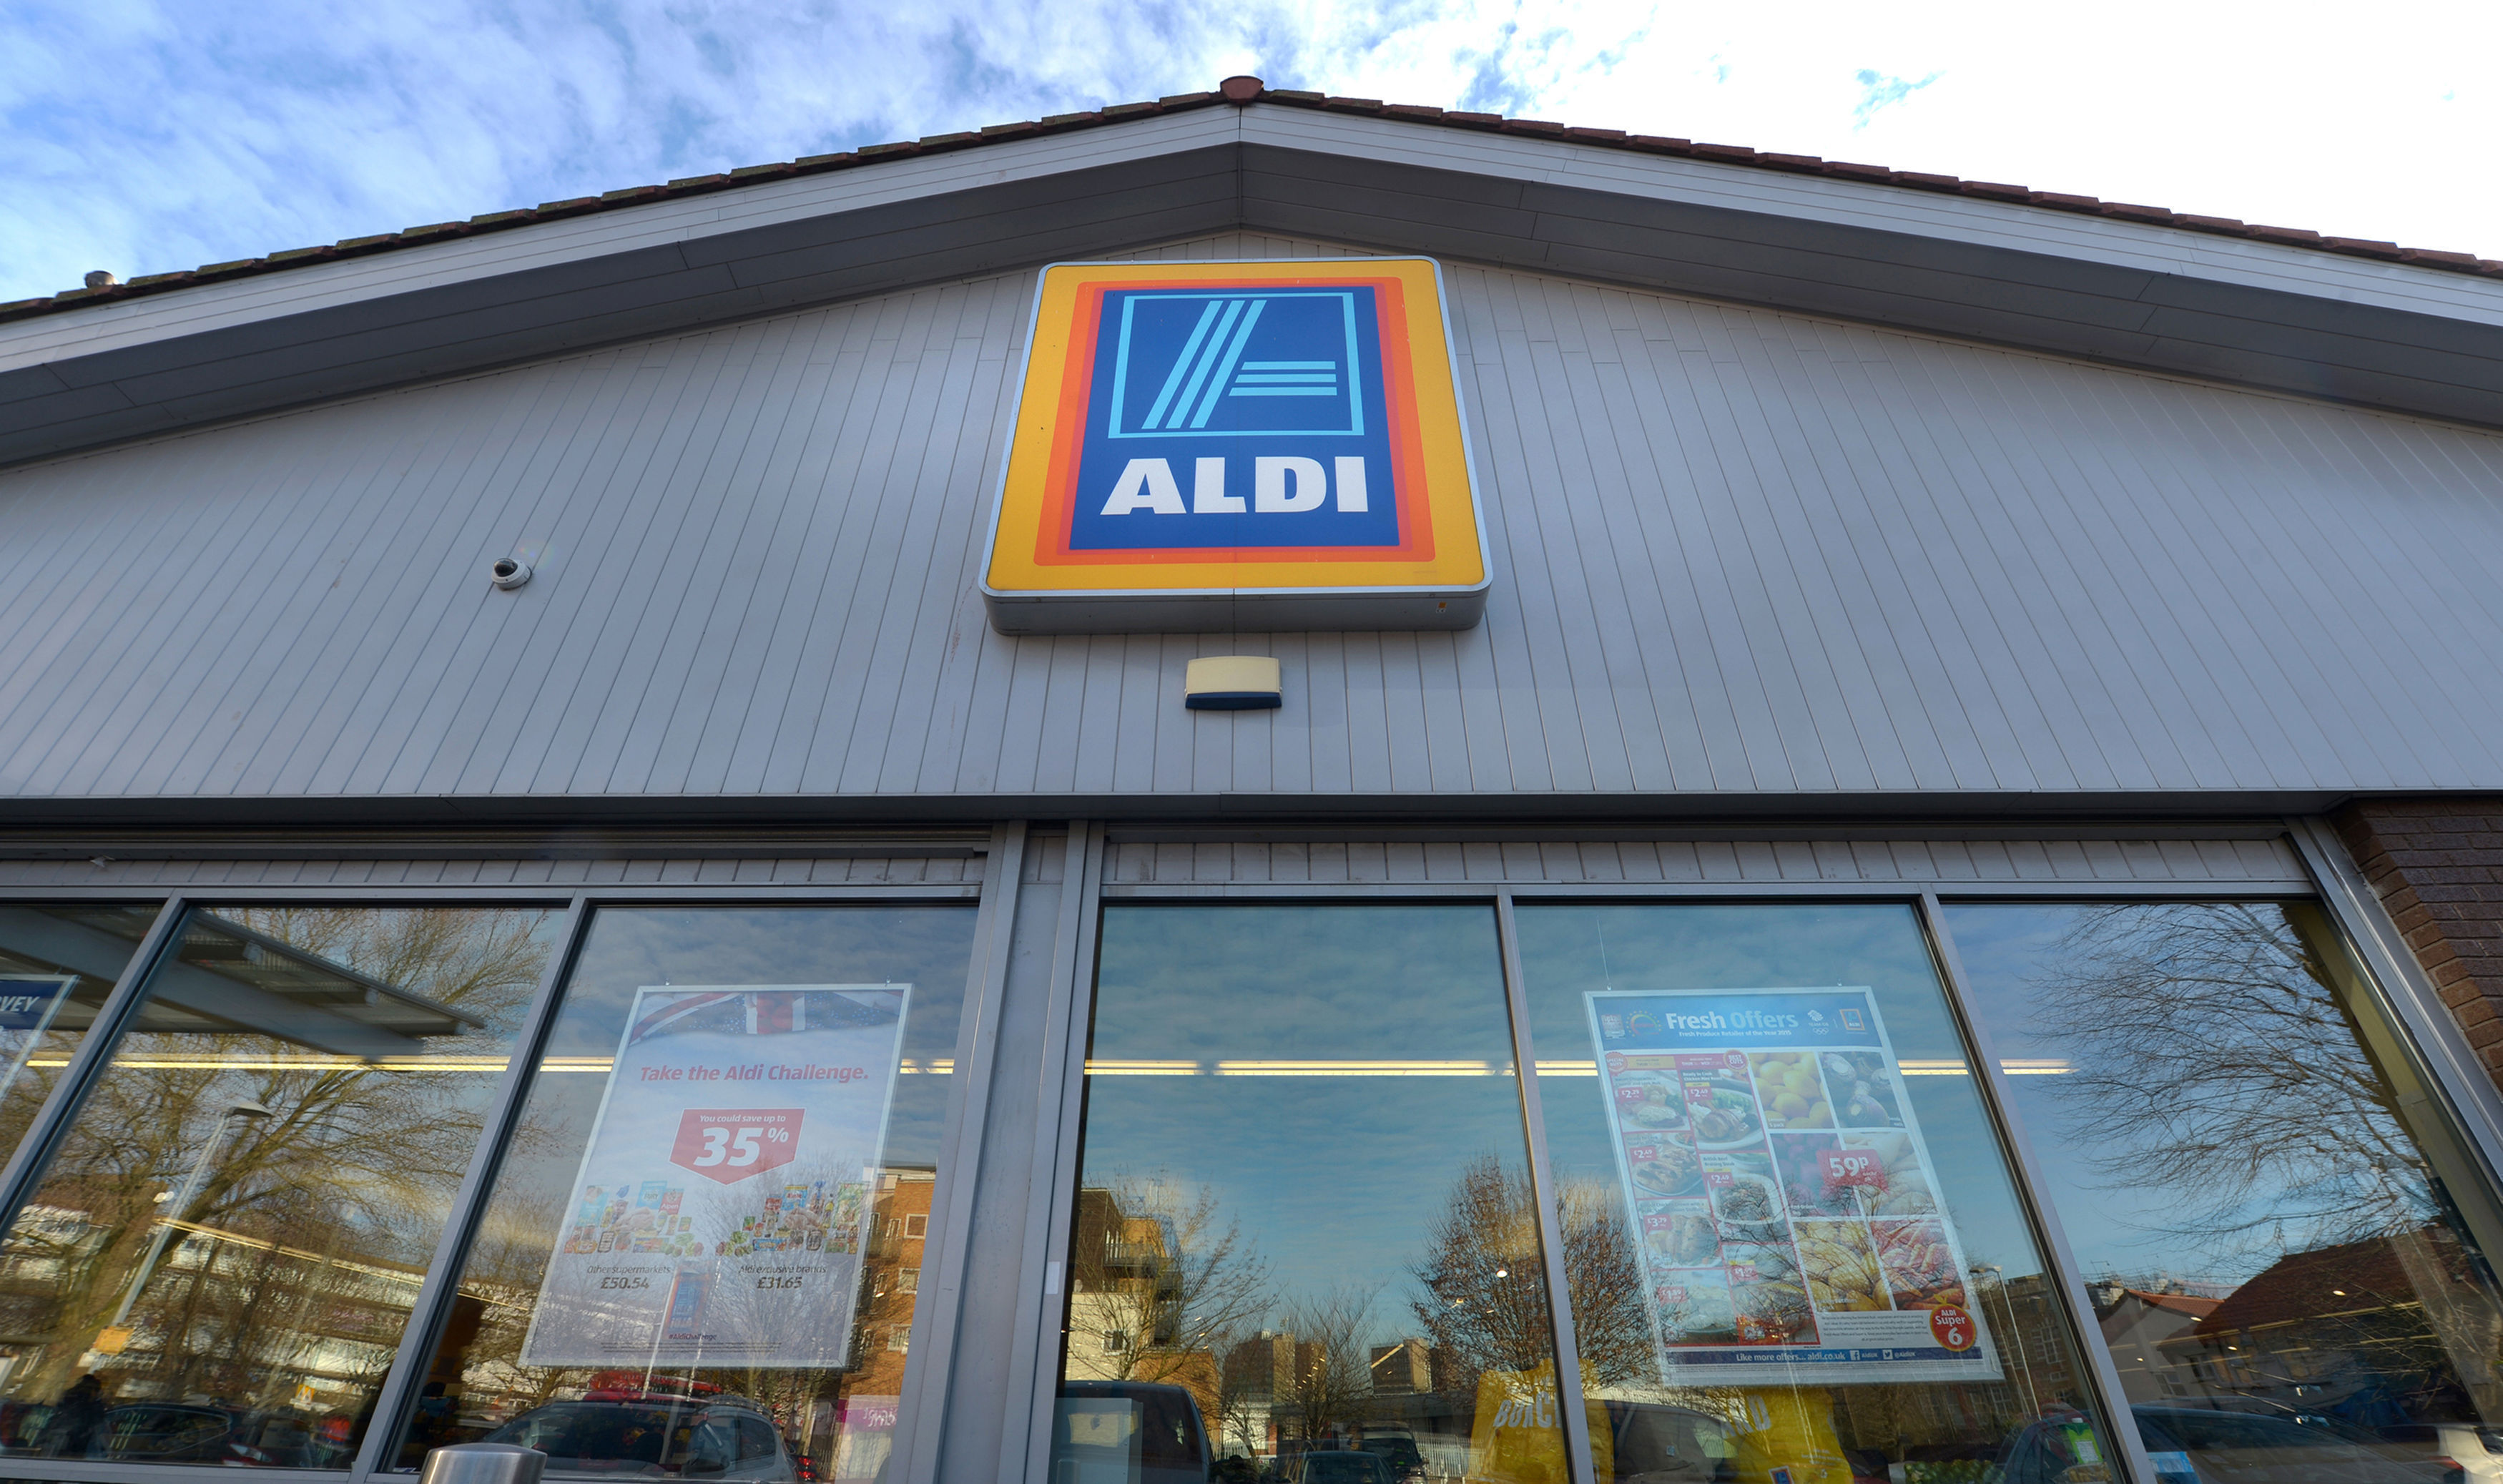 Aldi has overtaken the Co-operative to become Britain's fifth largest grocer, according to new figures. (Anthony Devlin/PA Wire)